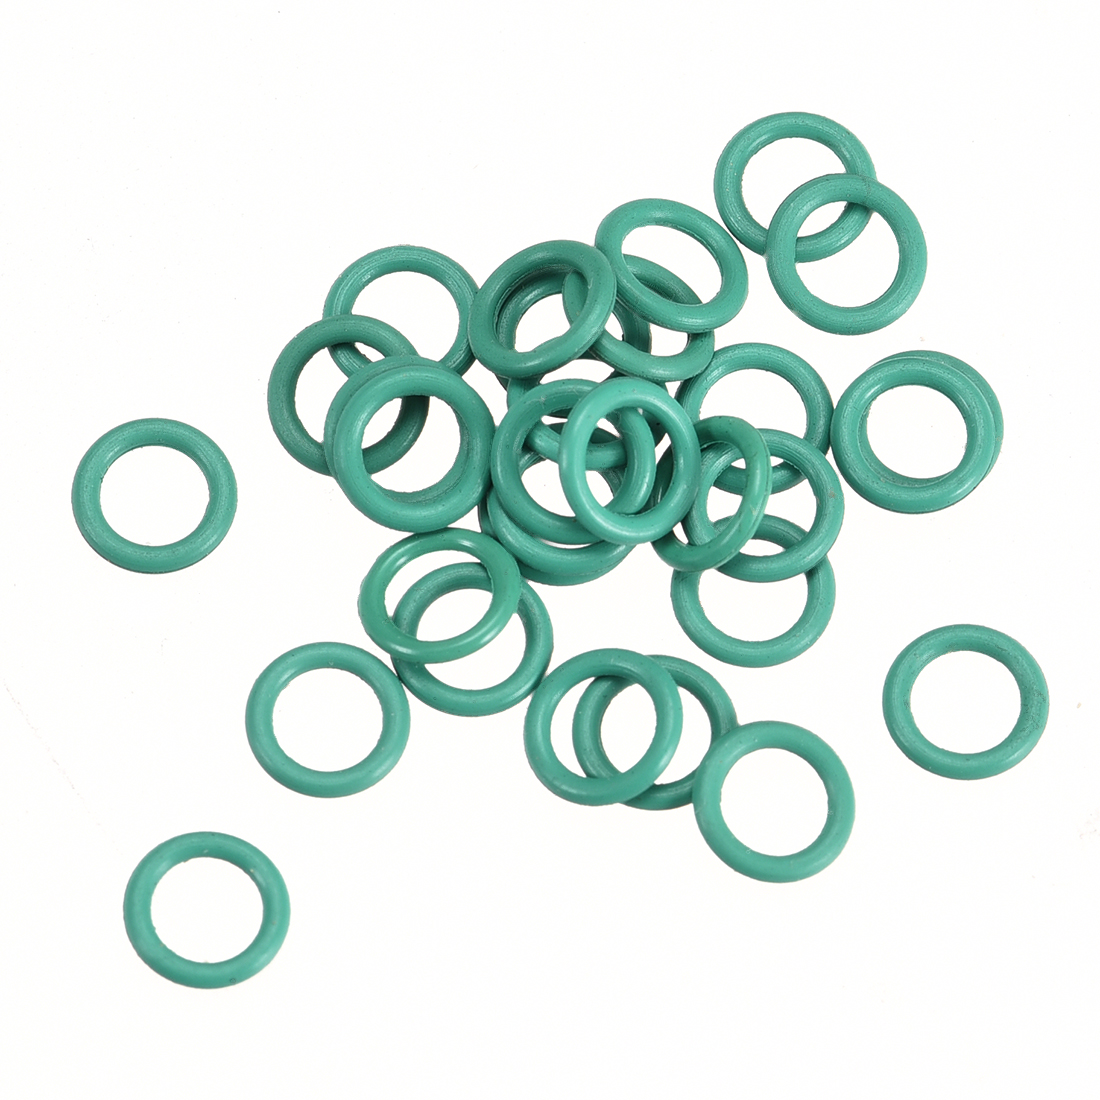 30Pcs 6mm x 1mm FKM Rubber O-rings Heat Resistant Sealing Ring Grommets Green